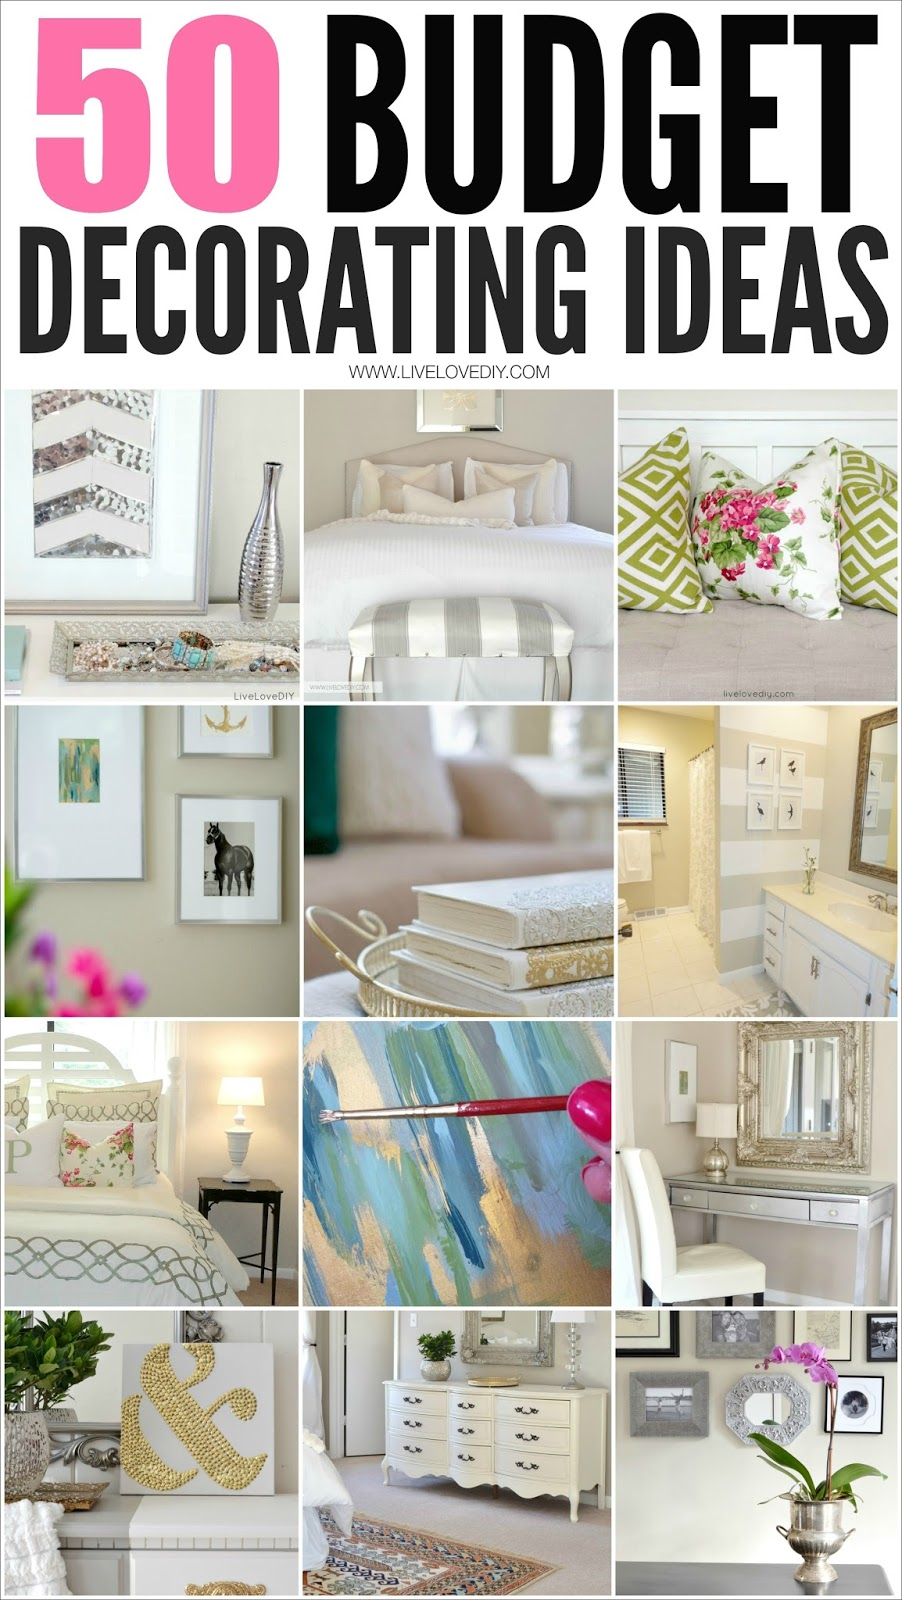 LiveLoveDIY 50 Budget Decorating Tips You Should Know!